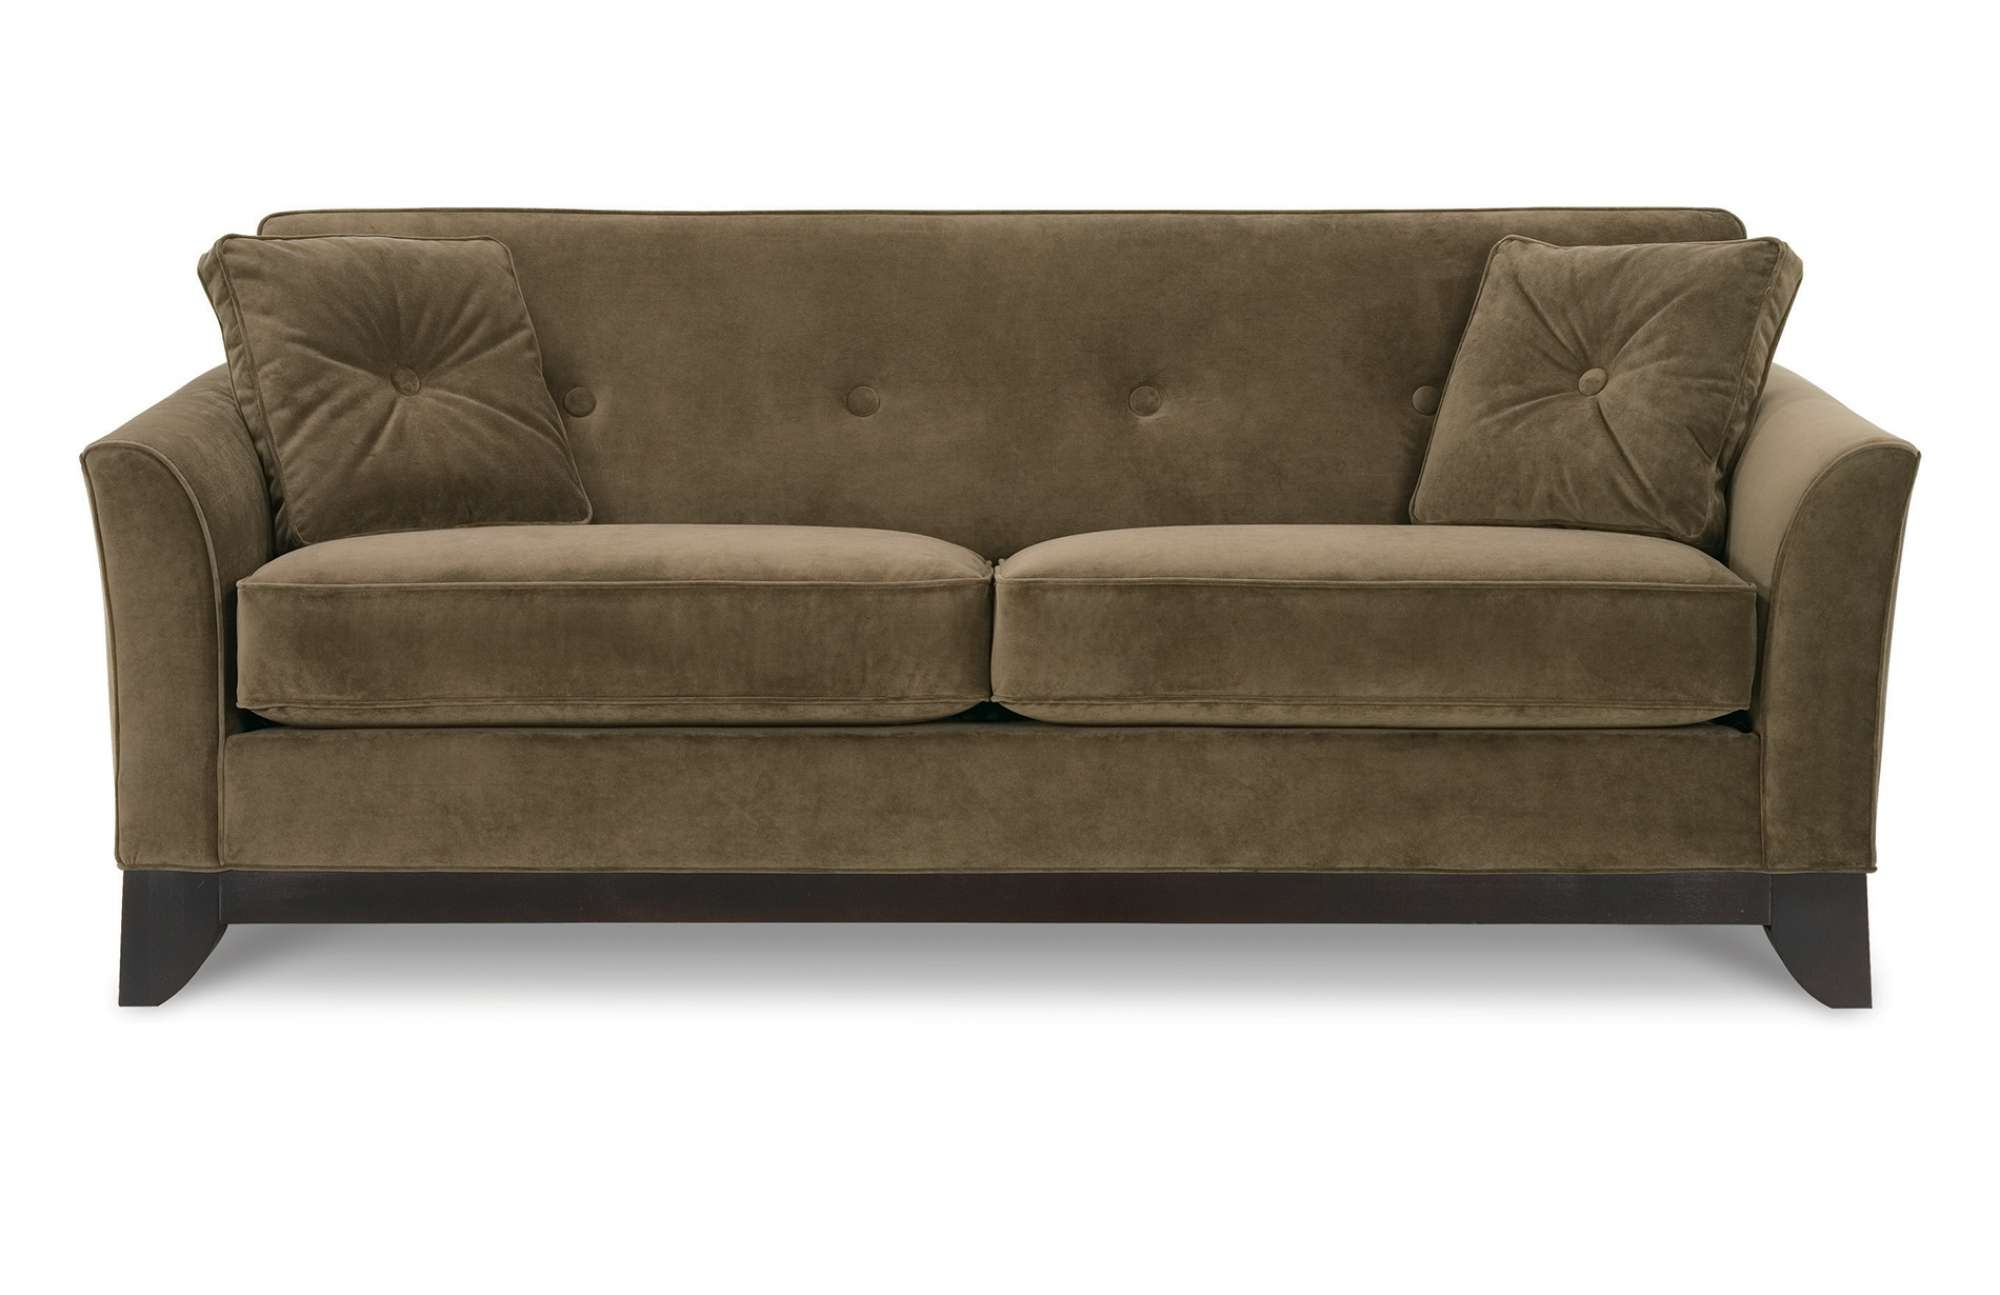 Sofas Center Fancy Furniture Sofa In Room Ideas With Singular With Regard  To Fancy Sofas (